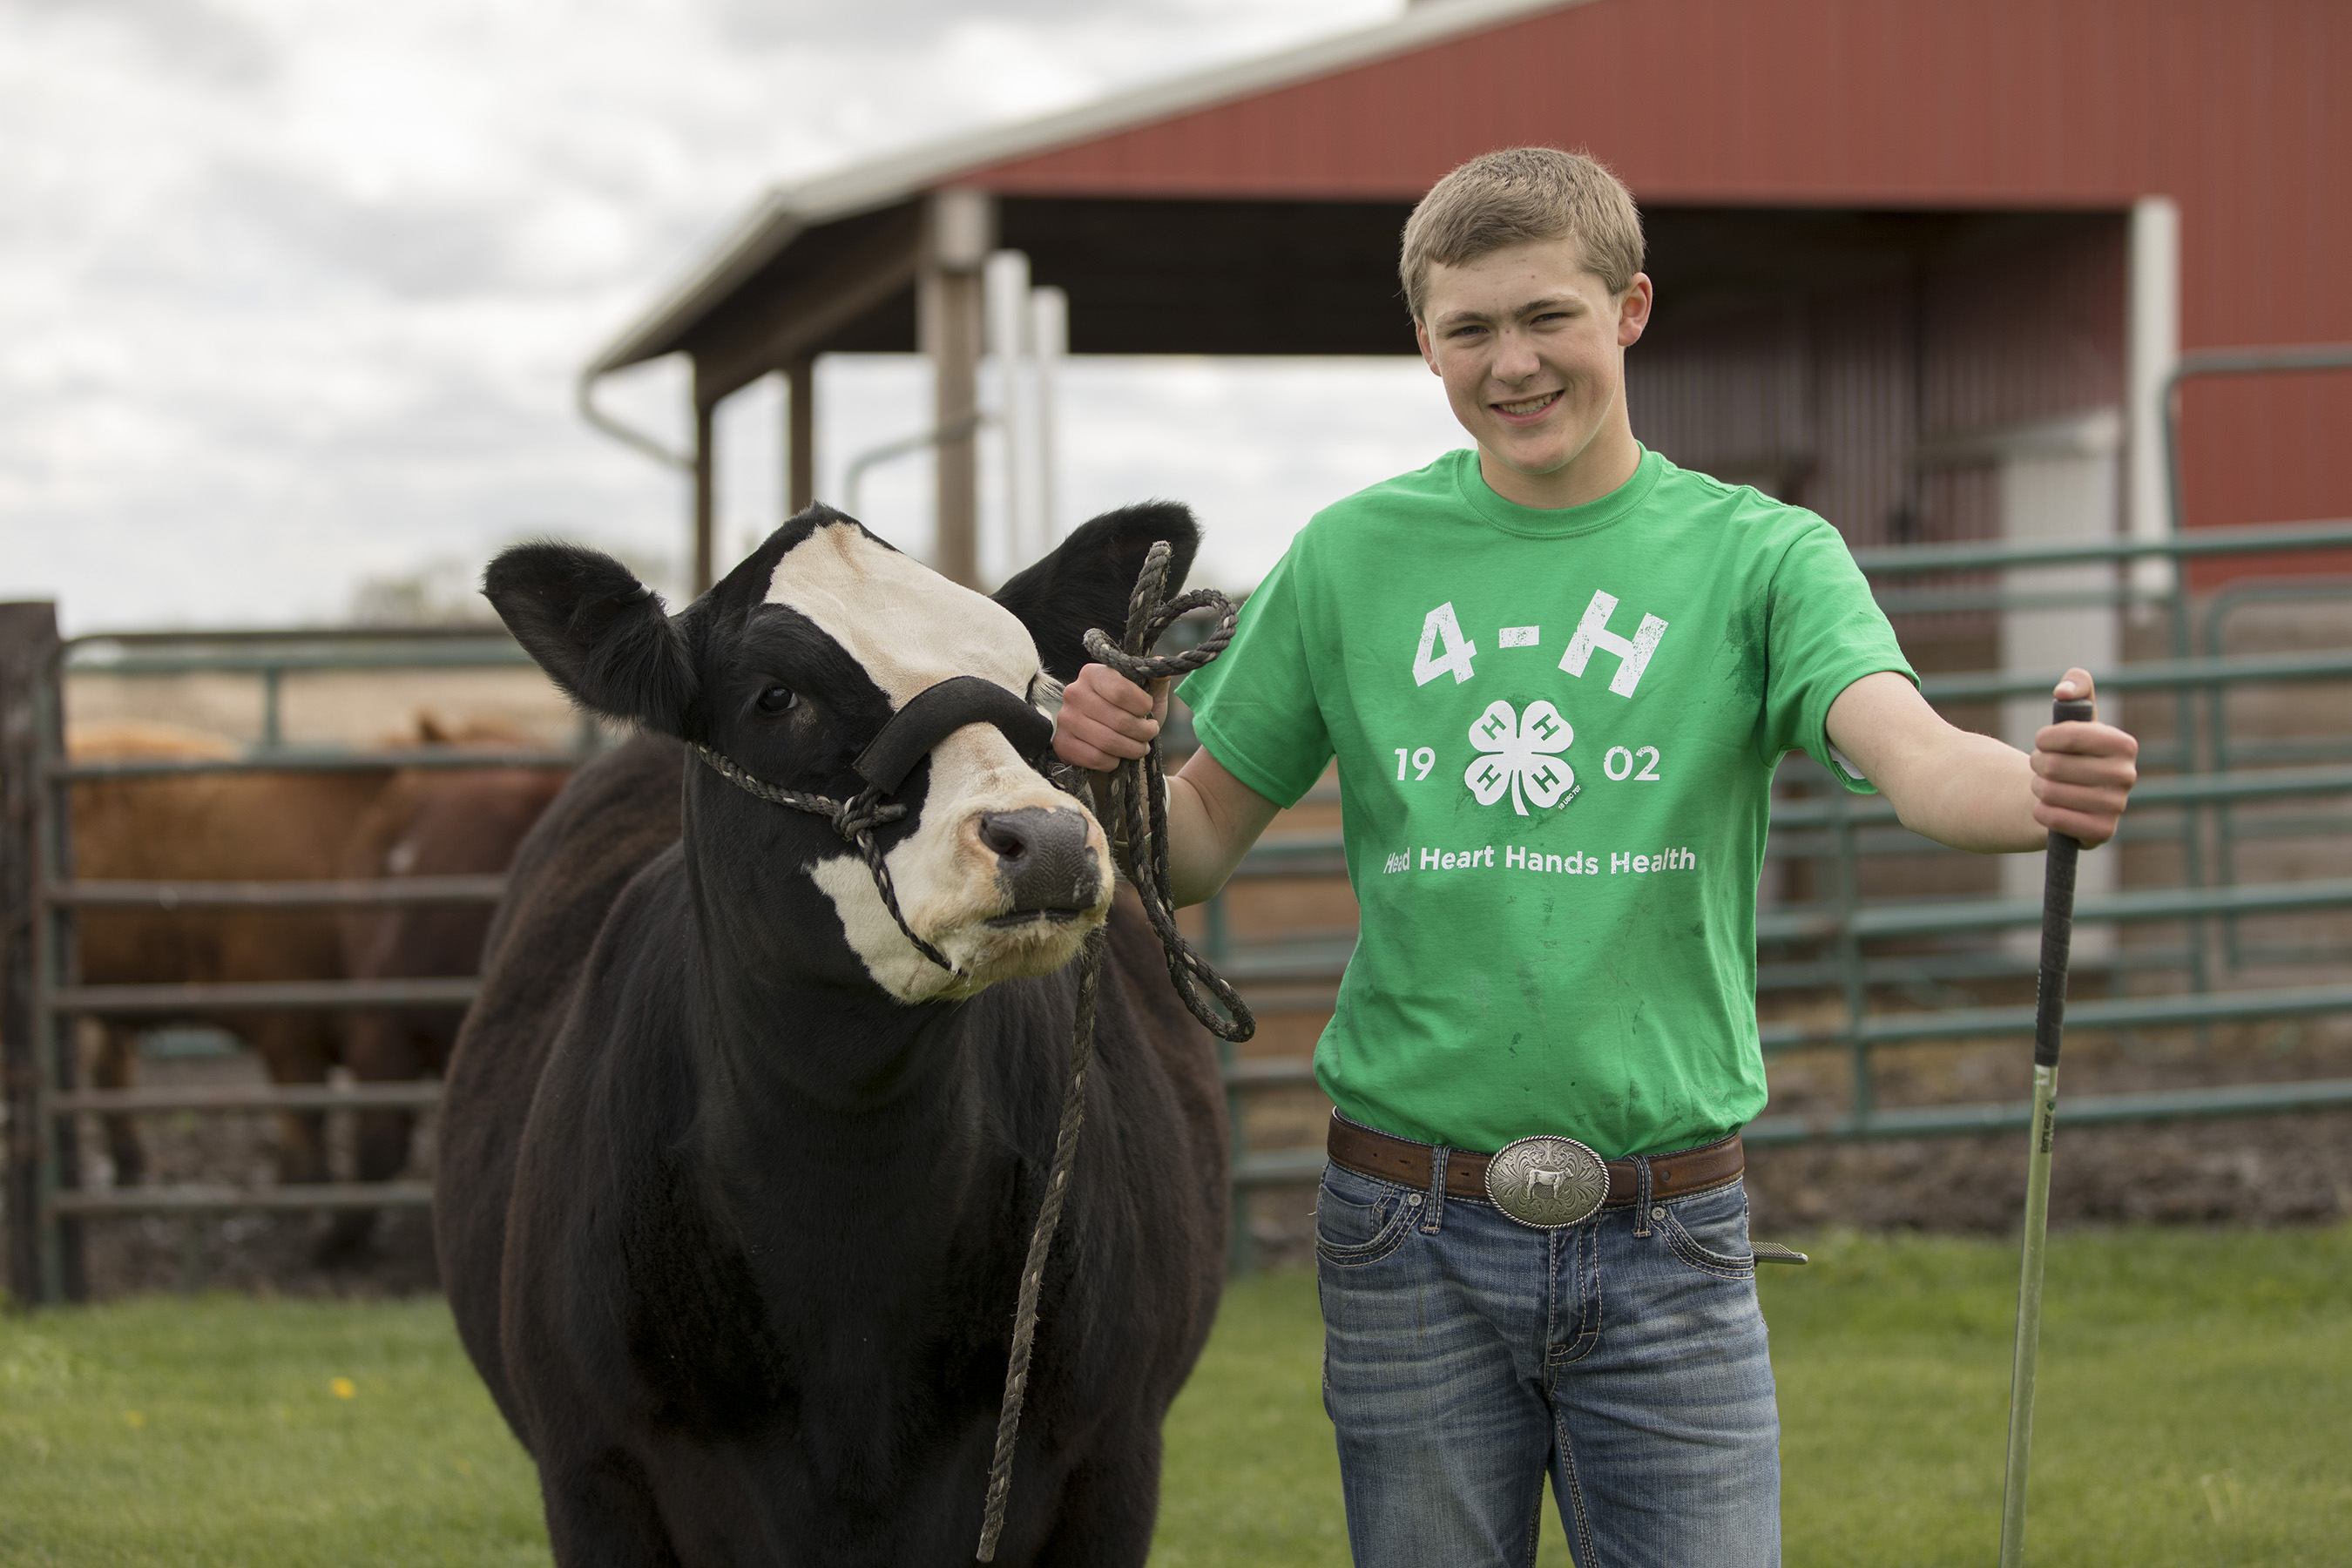 Bayers new collaboration with 4-H will support science, education and the next generation of agriculture.